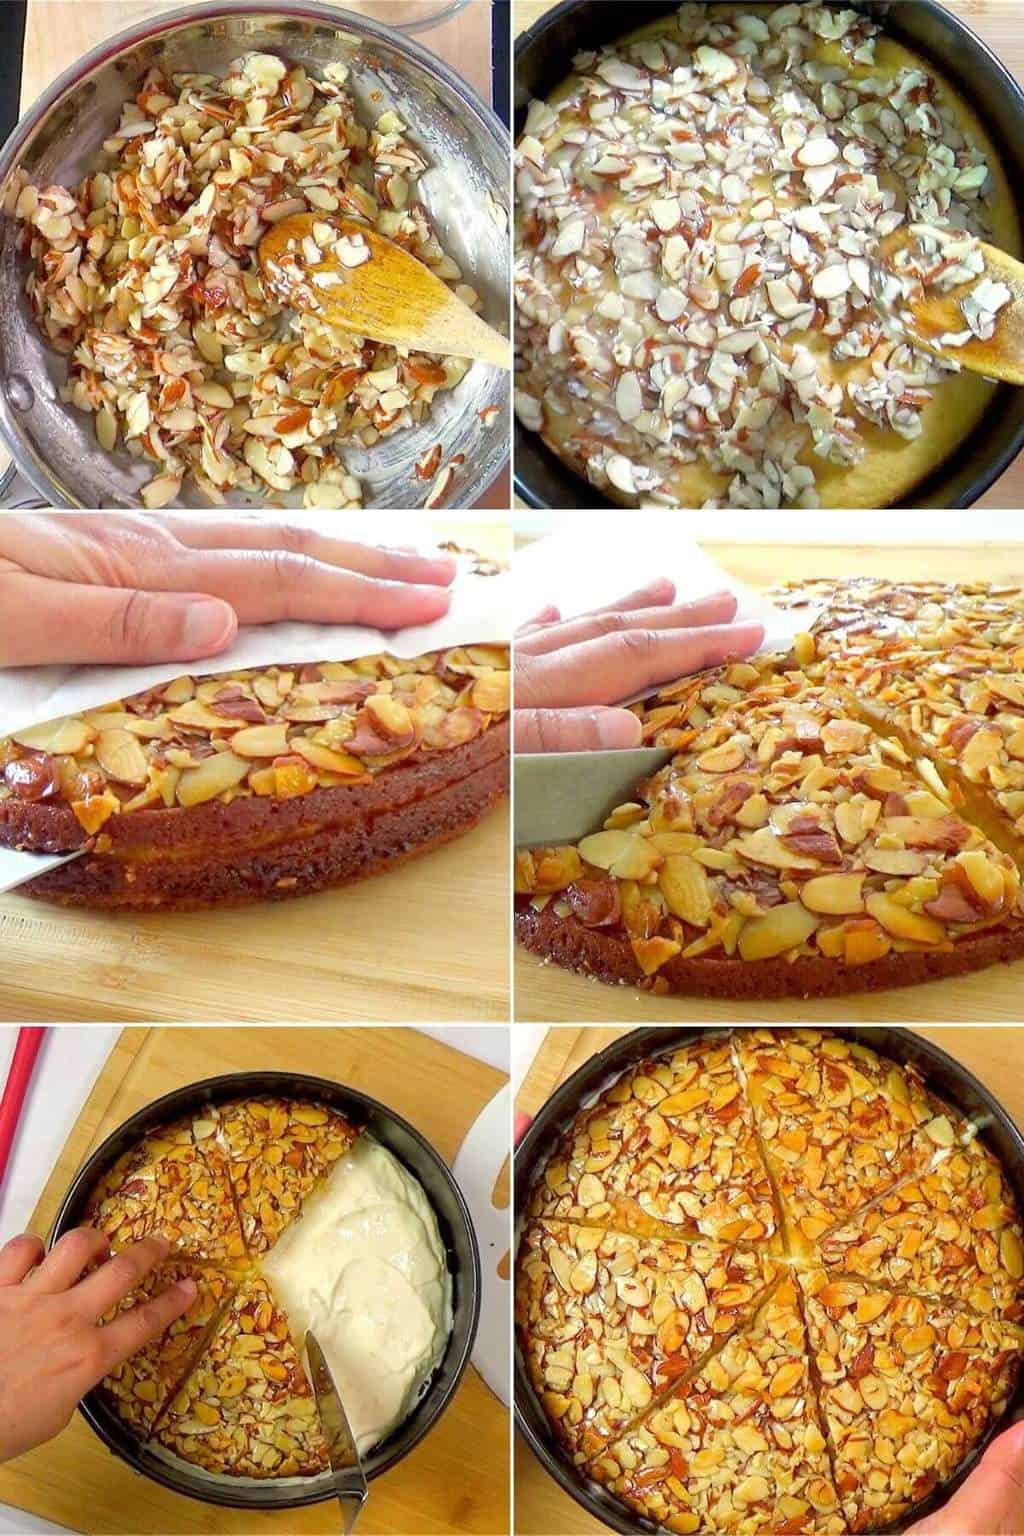 Step by step for making the almond topping and assembling the cake.